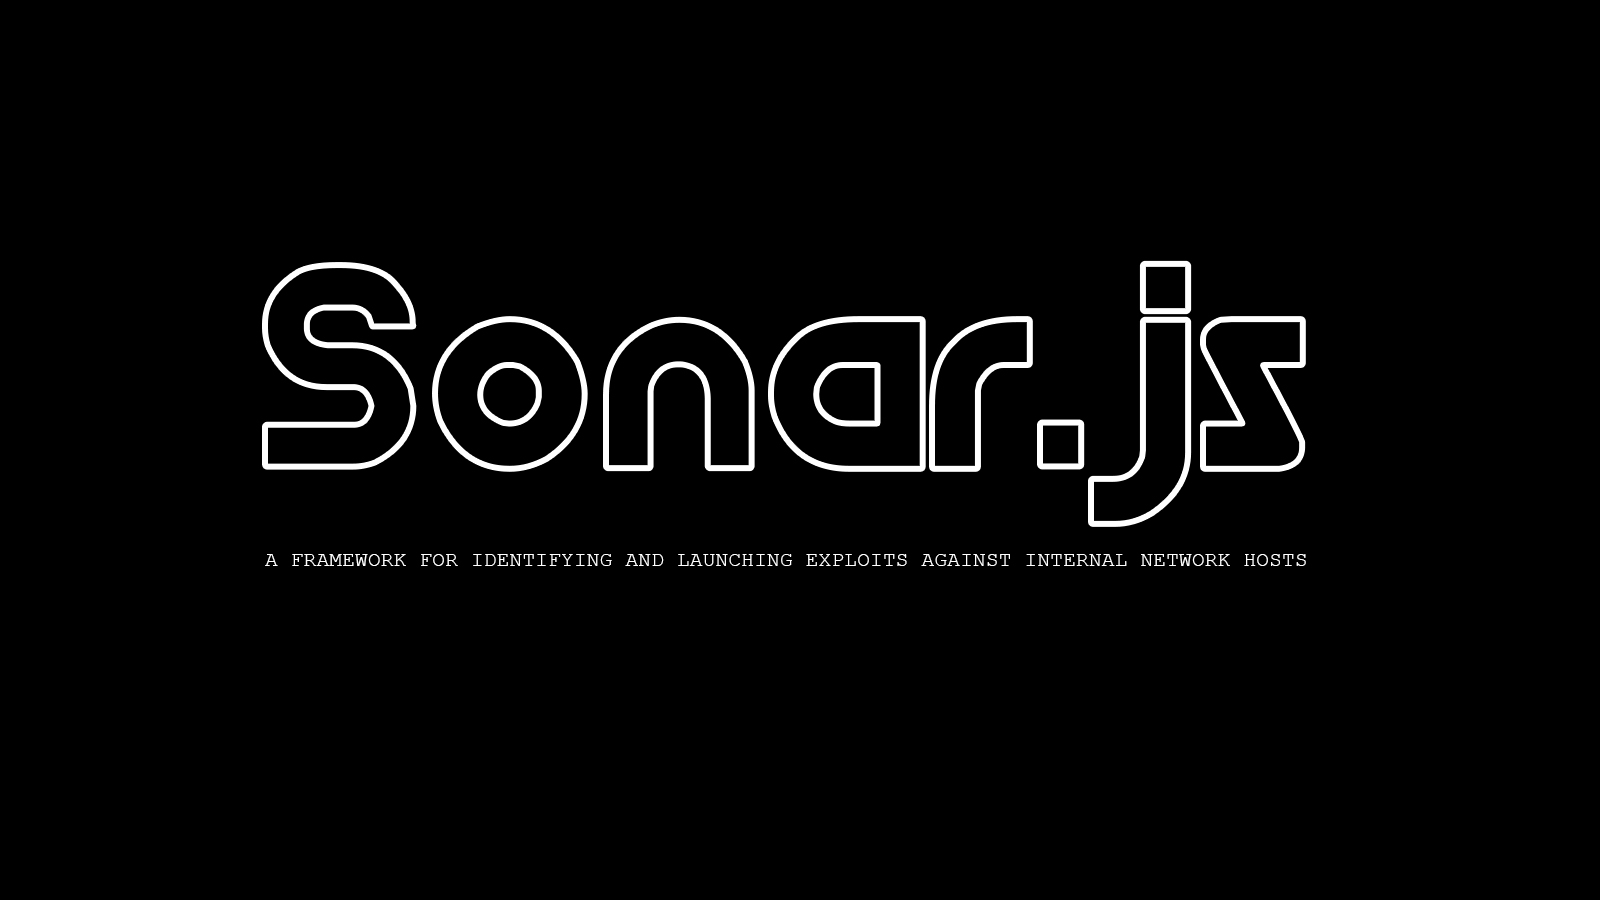 Sonar.js - A Framework for Identifying and Launching Exploits Against Internal Network Hosts